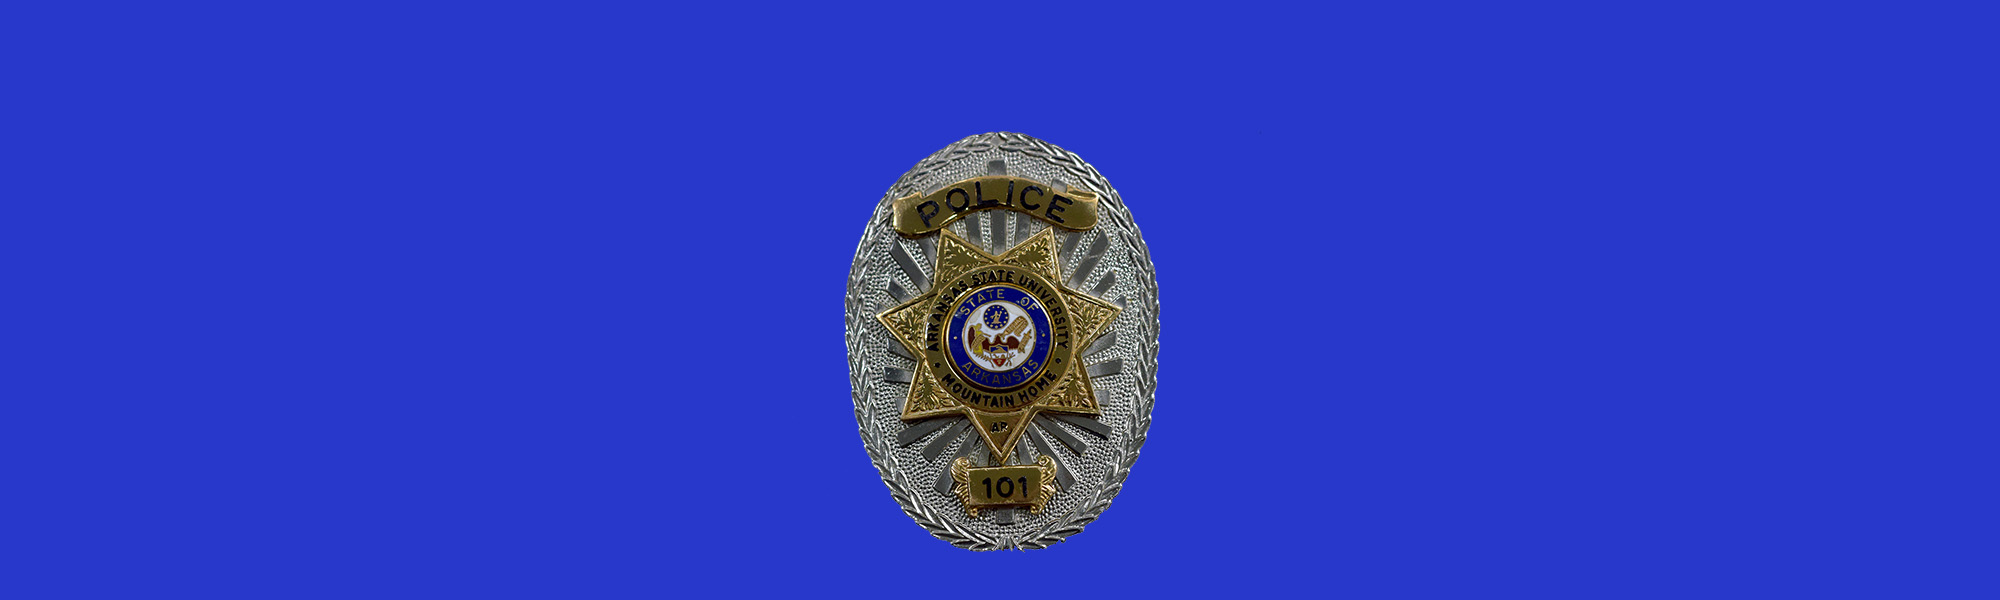 Campus Police Background Pic